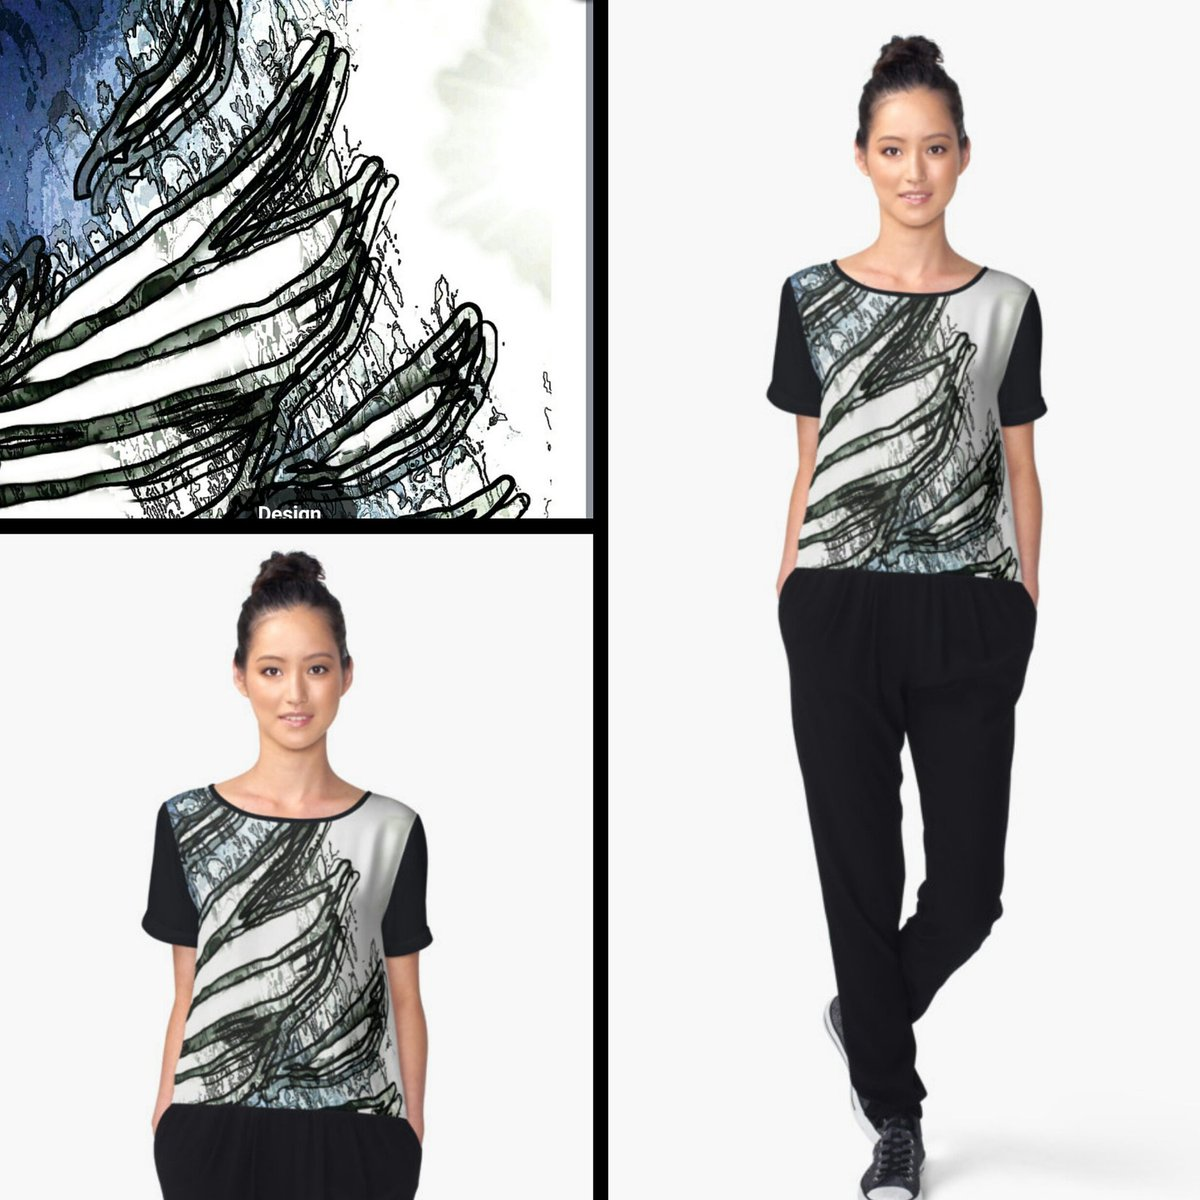 Icarus Chiffon Tops by #jerrywatkins   http://www. redbubble.com/people/jerrywa tkins/works/24430427-icarus?grid_pos=41&amp;p=chiffon-top &nbsp; …   #redbubble #art #fashion #nyfw #pfw #fblogger #fashiondesign #artfashion<br>http://pic.twitter.com/wxuSKeC9hT